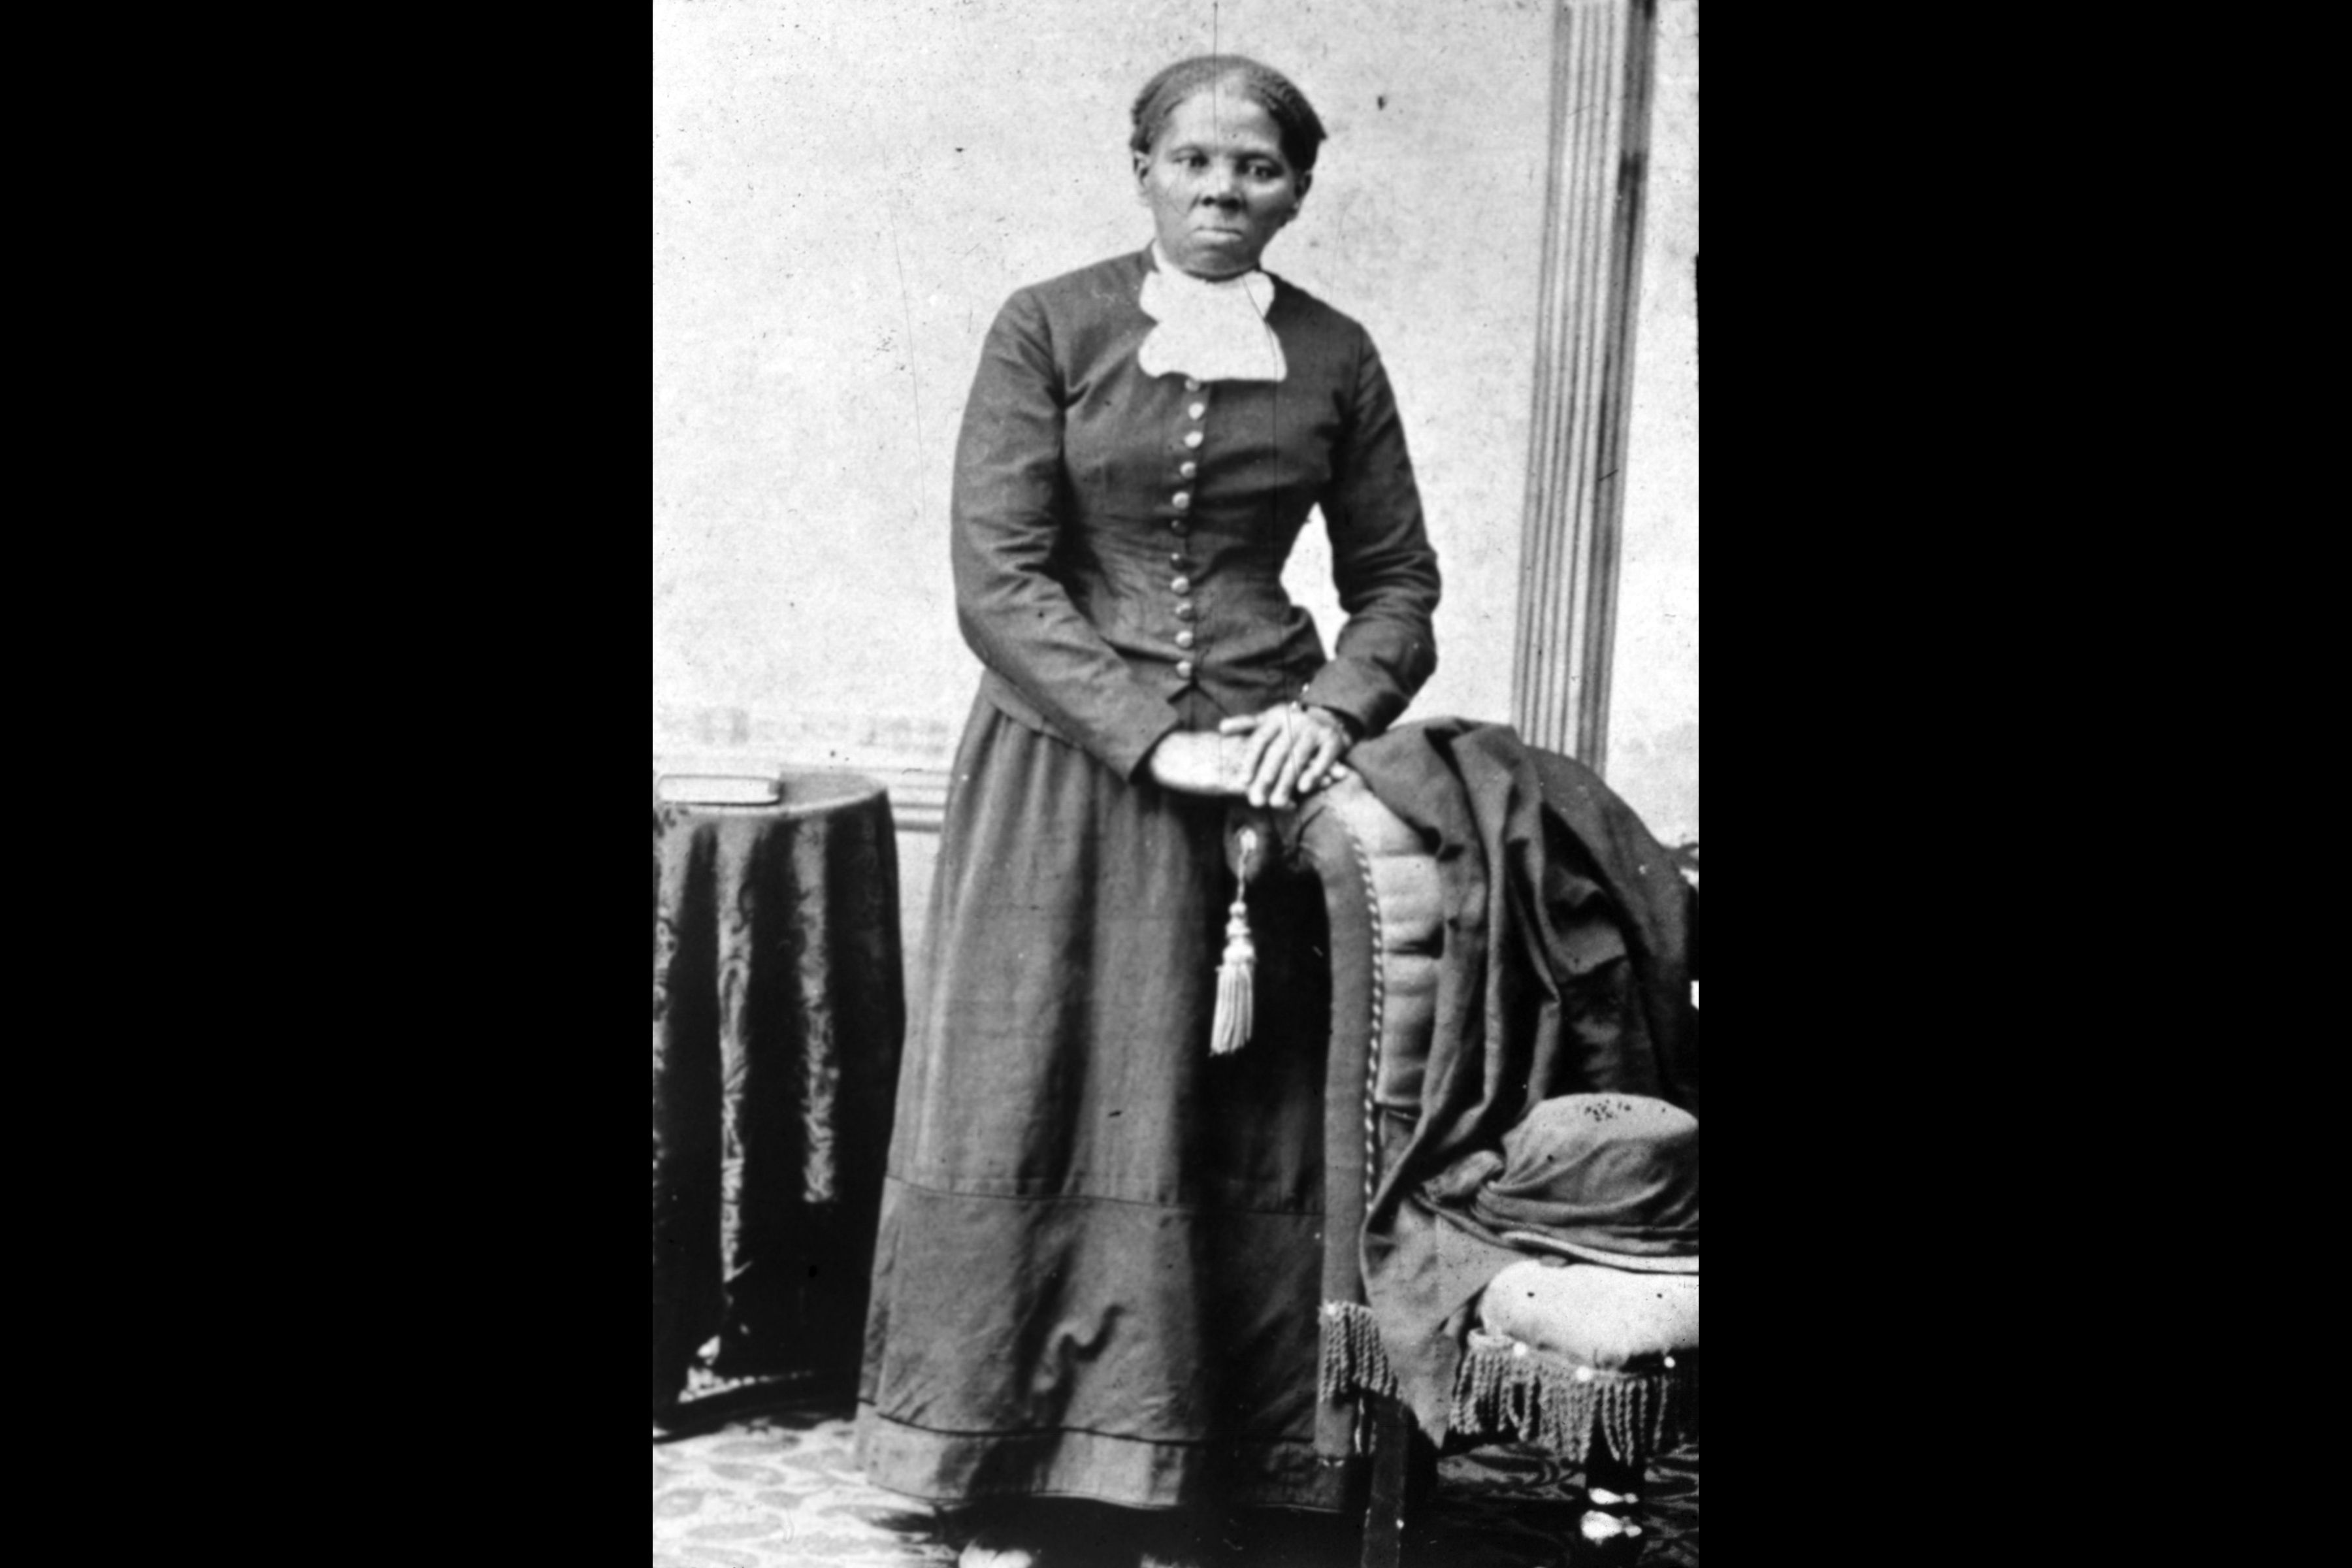 essays on harriet tubman Harriet tubman harriet tubman was an influential figure in both, the underground railroad and multiple anti-slavery movements - harriet tubman introduction.